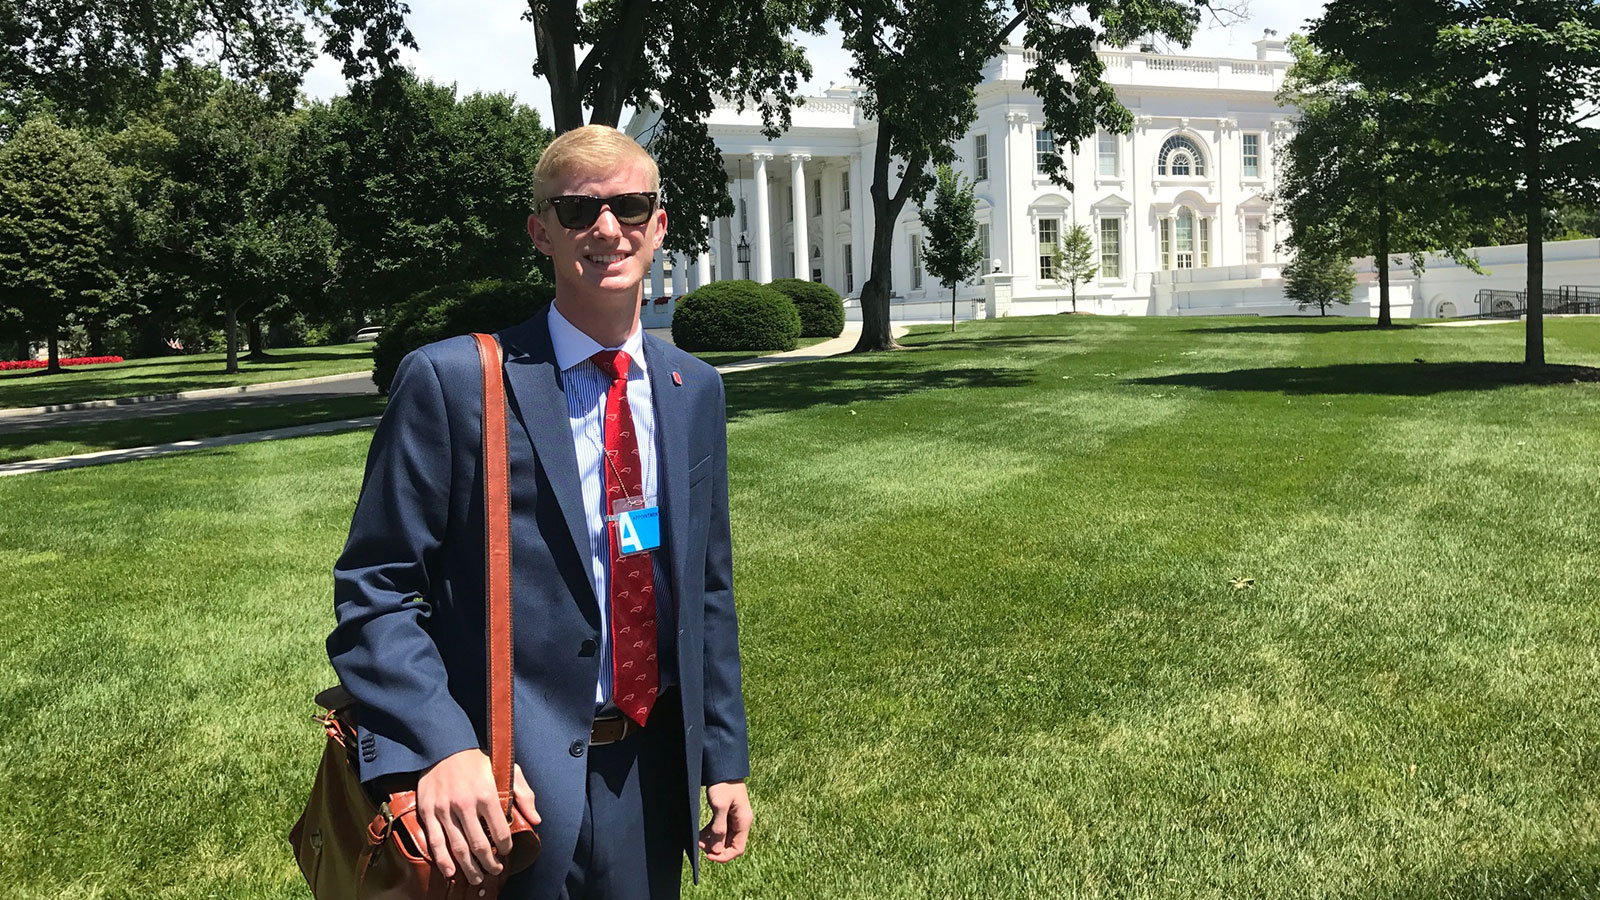 Luke Stancil on the White House lawn.